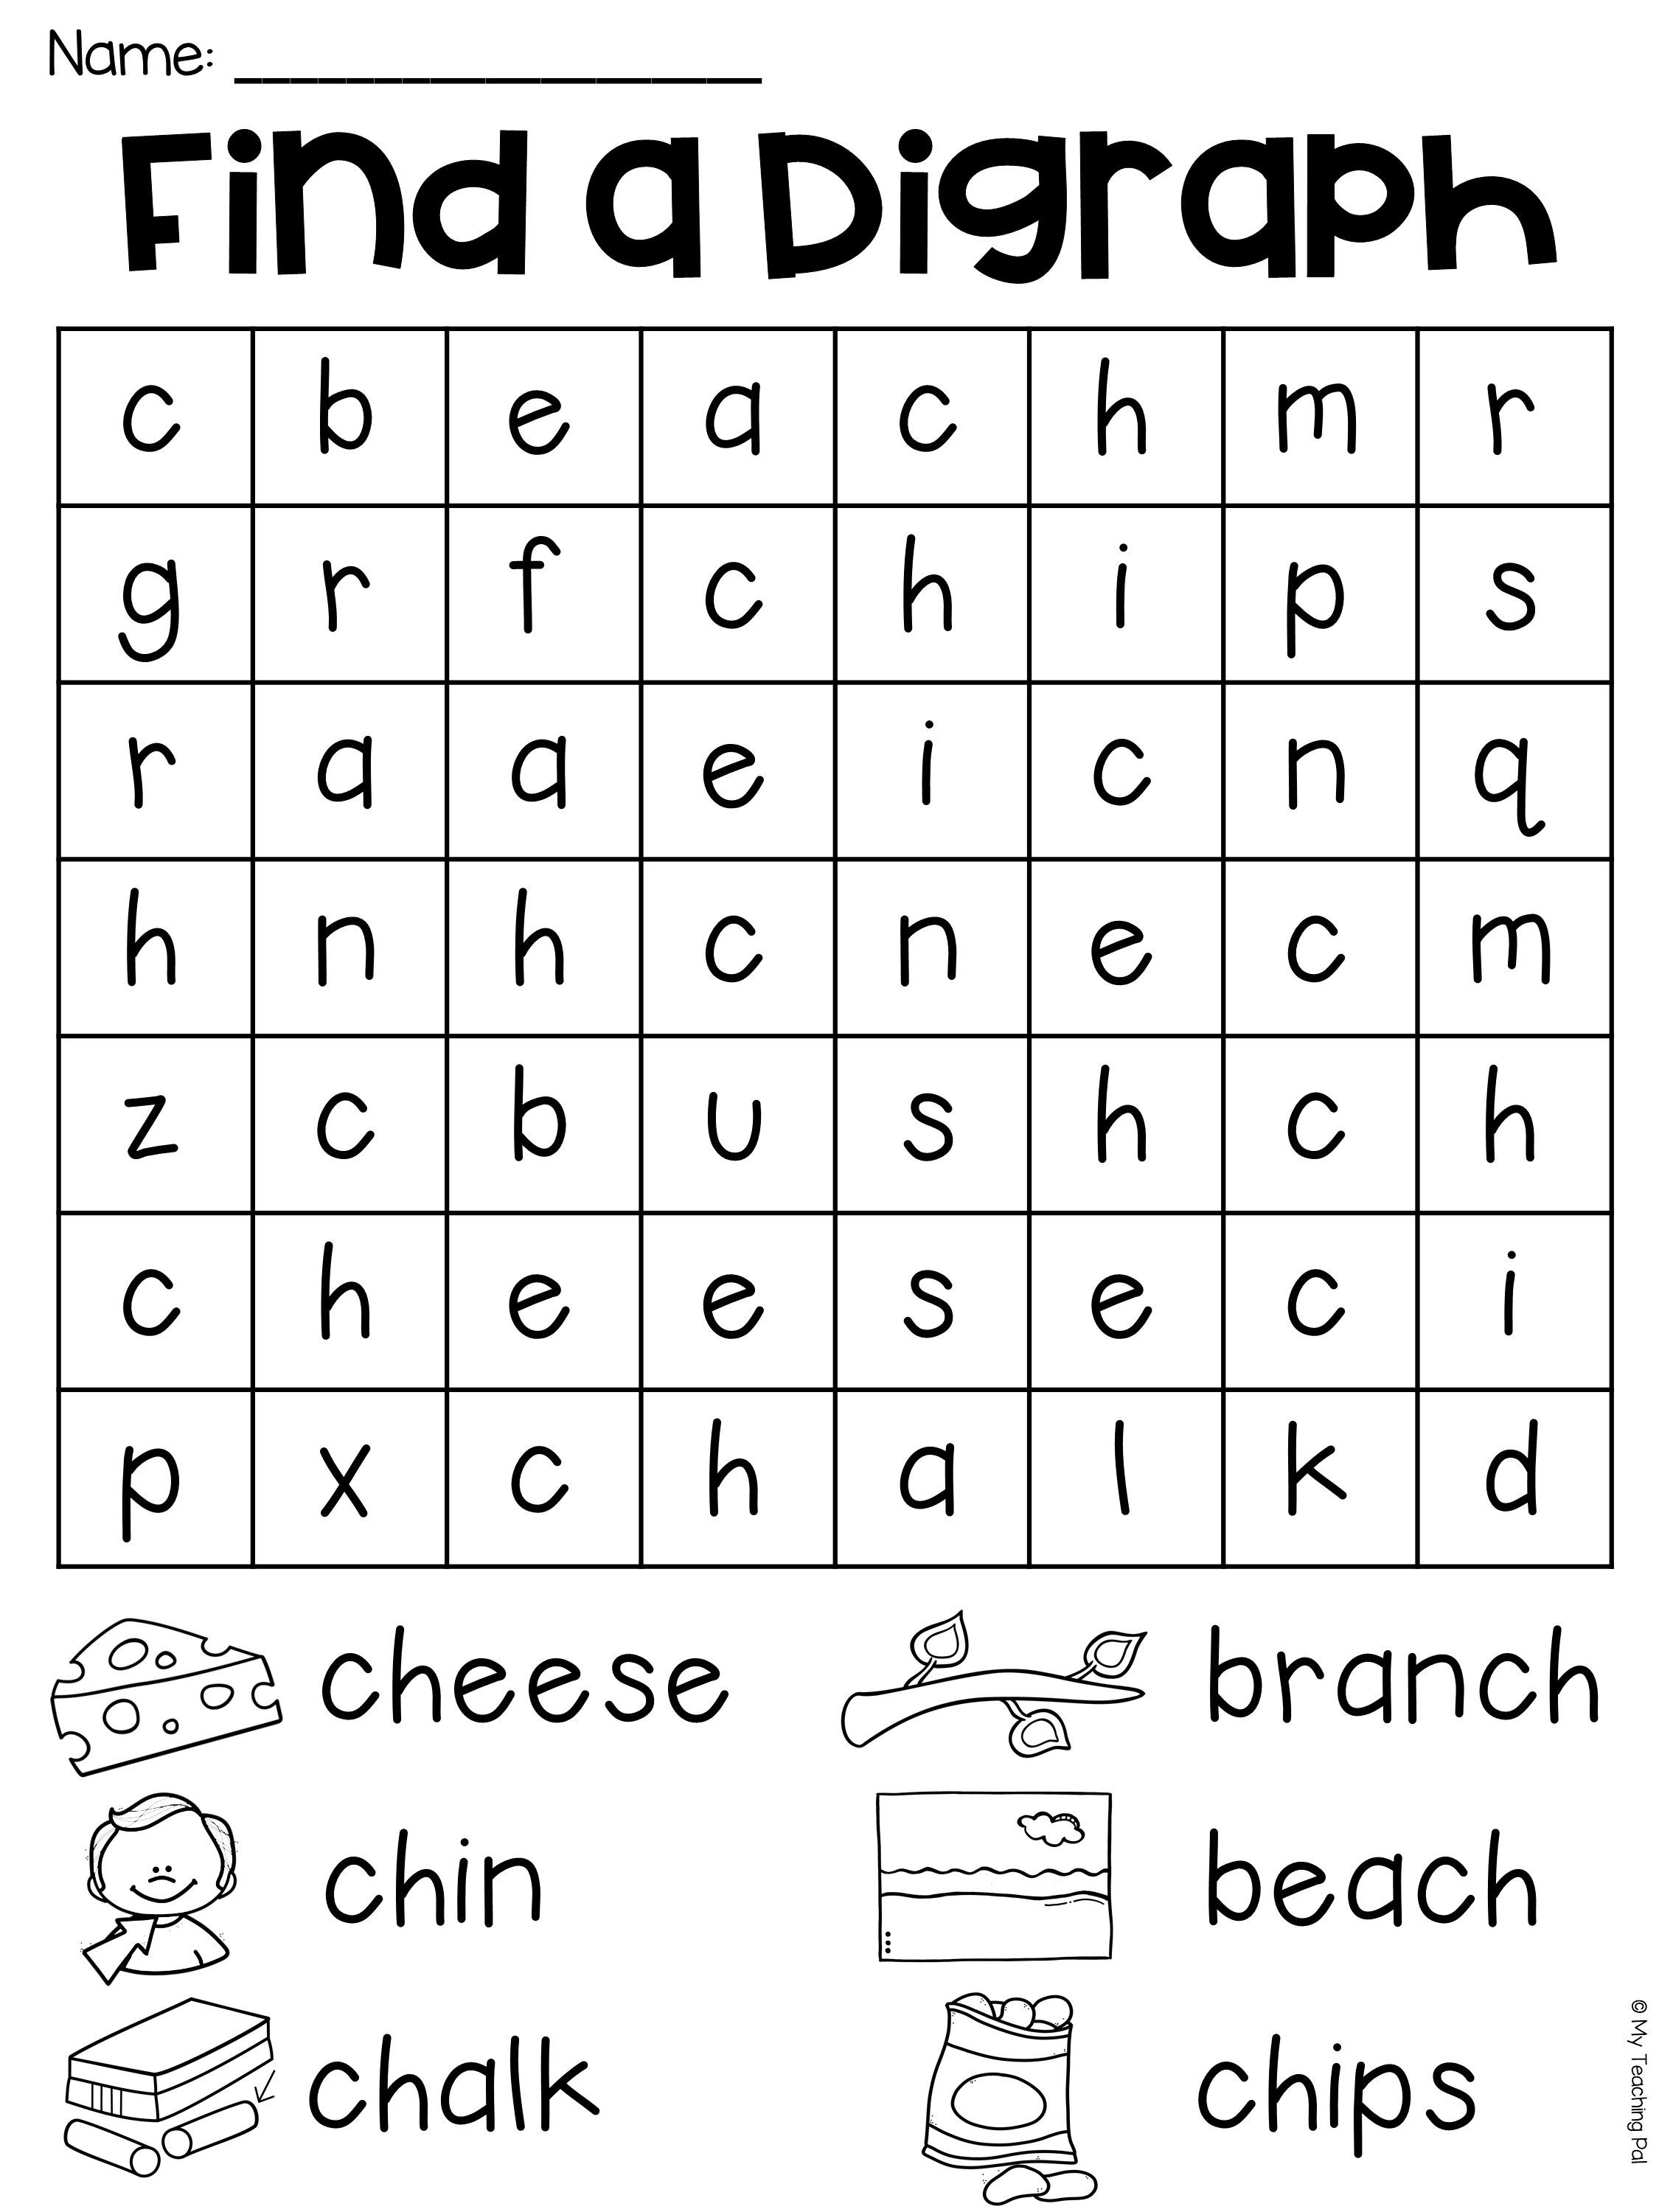 Fun Phonics Review Worksheets